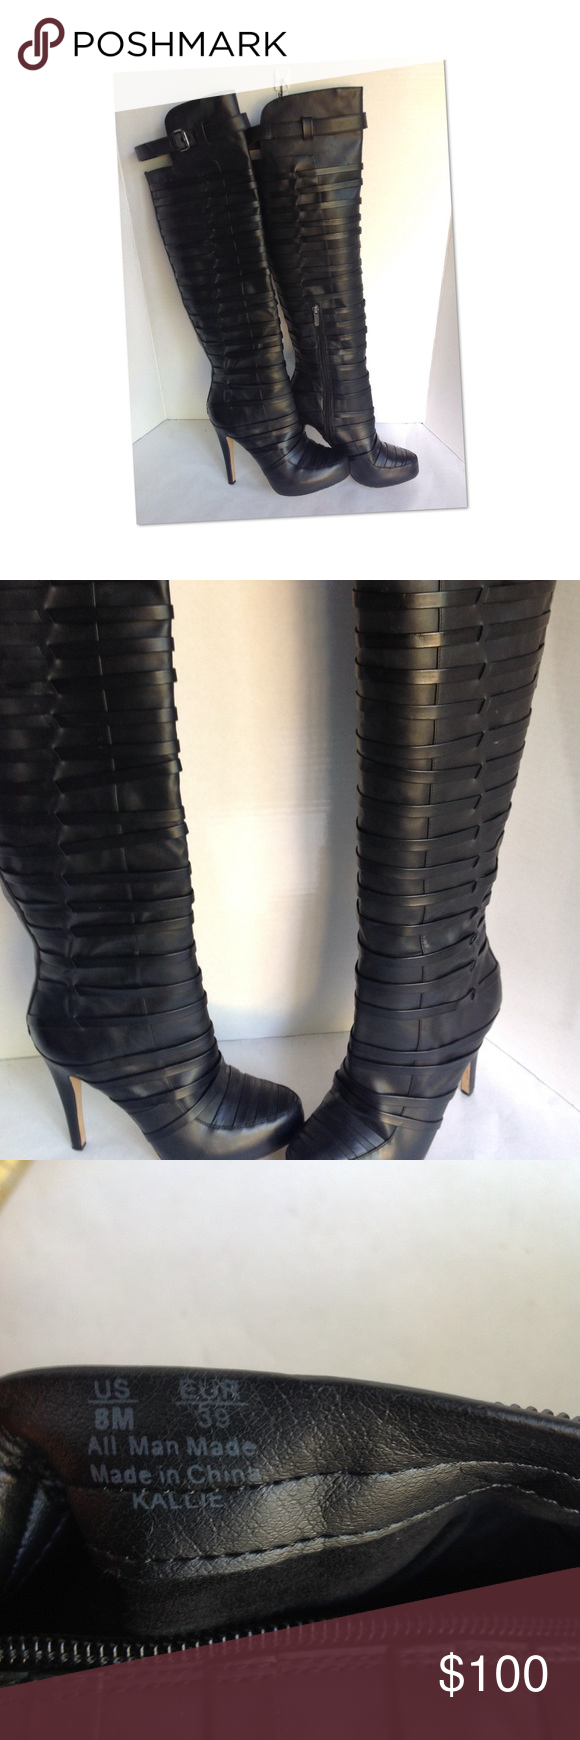 5e2c93468c487d KALLIE IN BLACK SMOOTH CIRCUS BY SAM EDELMAN EXCELLENT used condition